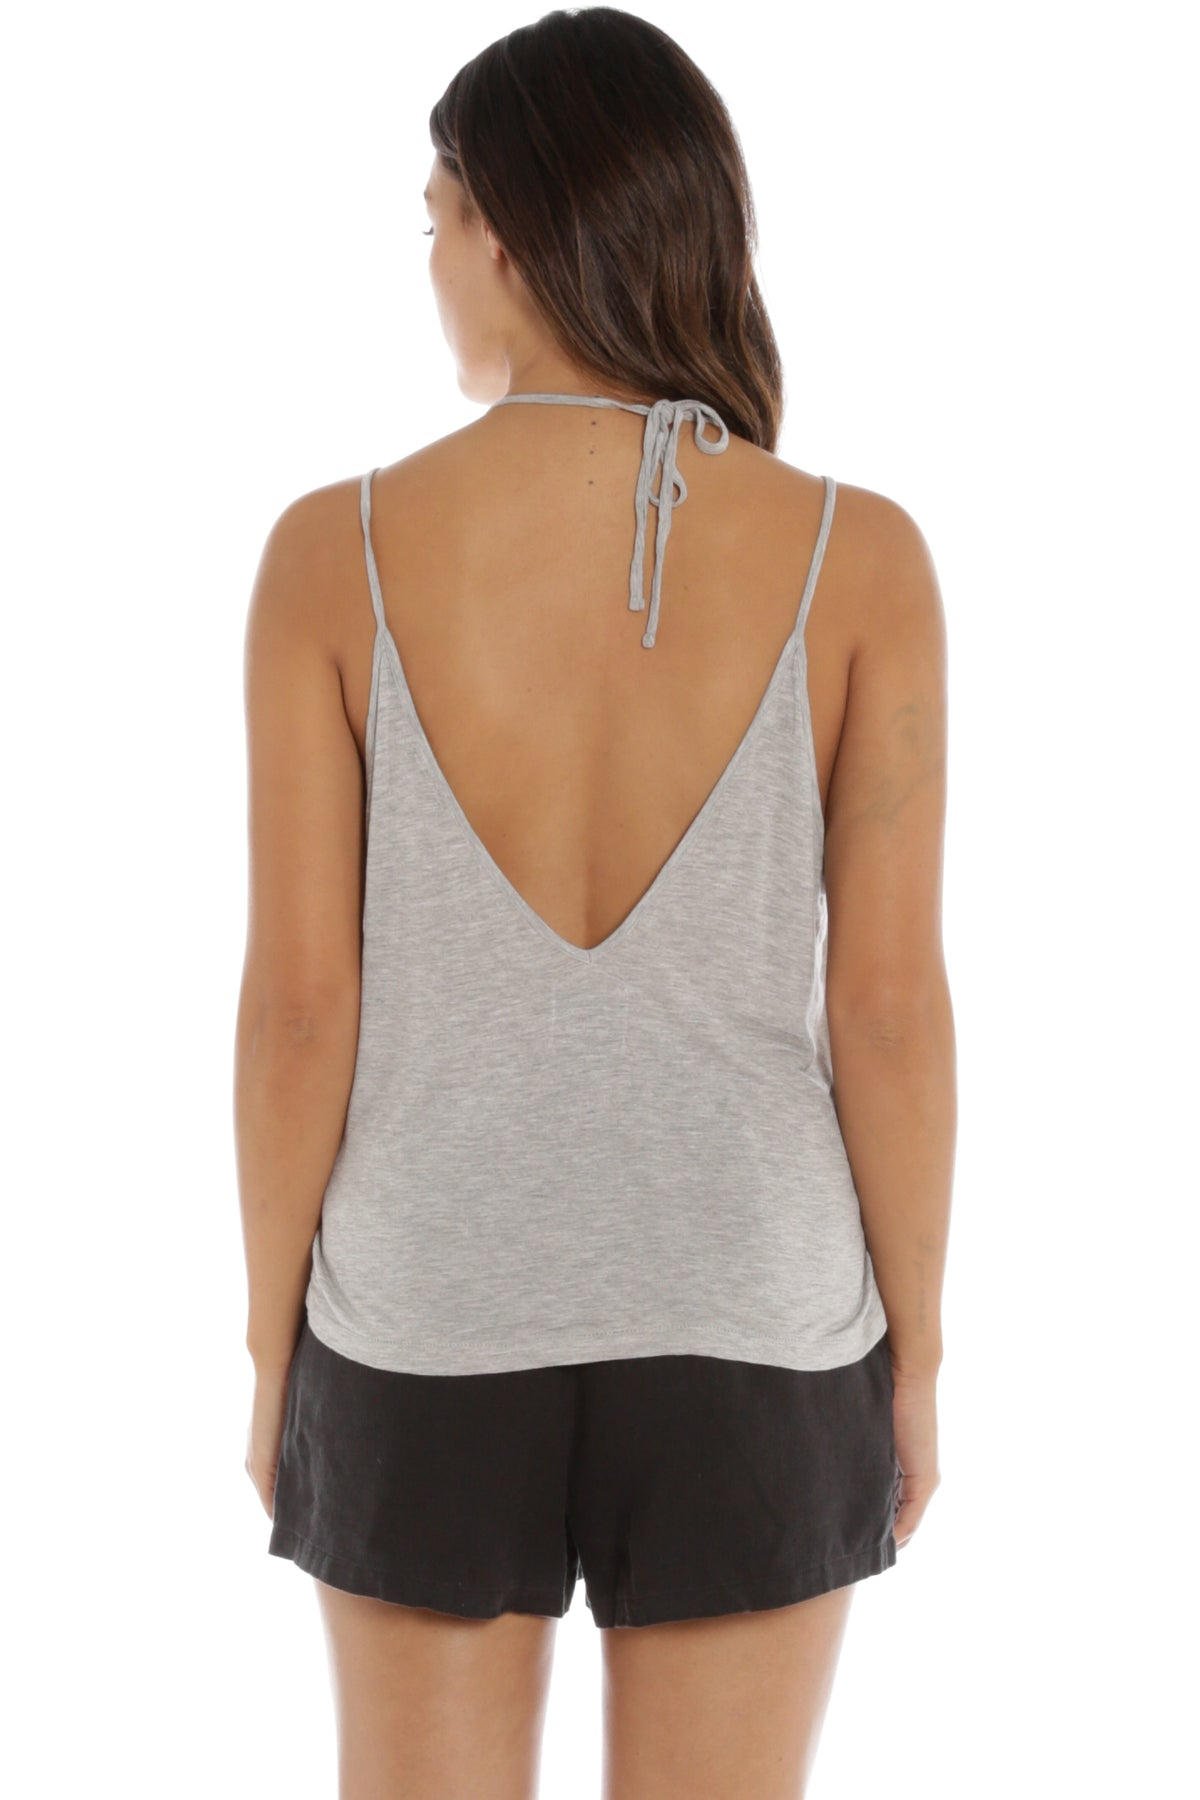 Rock It Singlet in Grey Marle